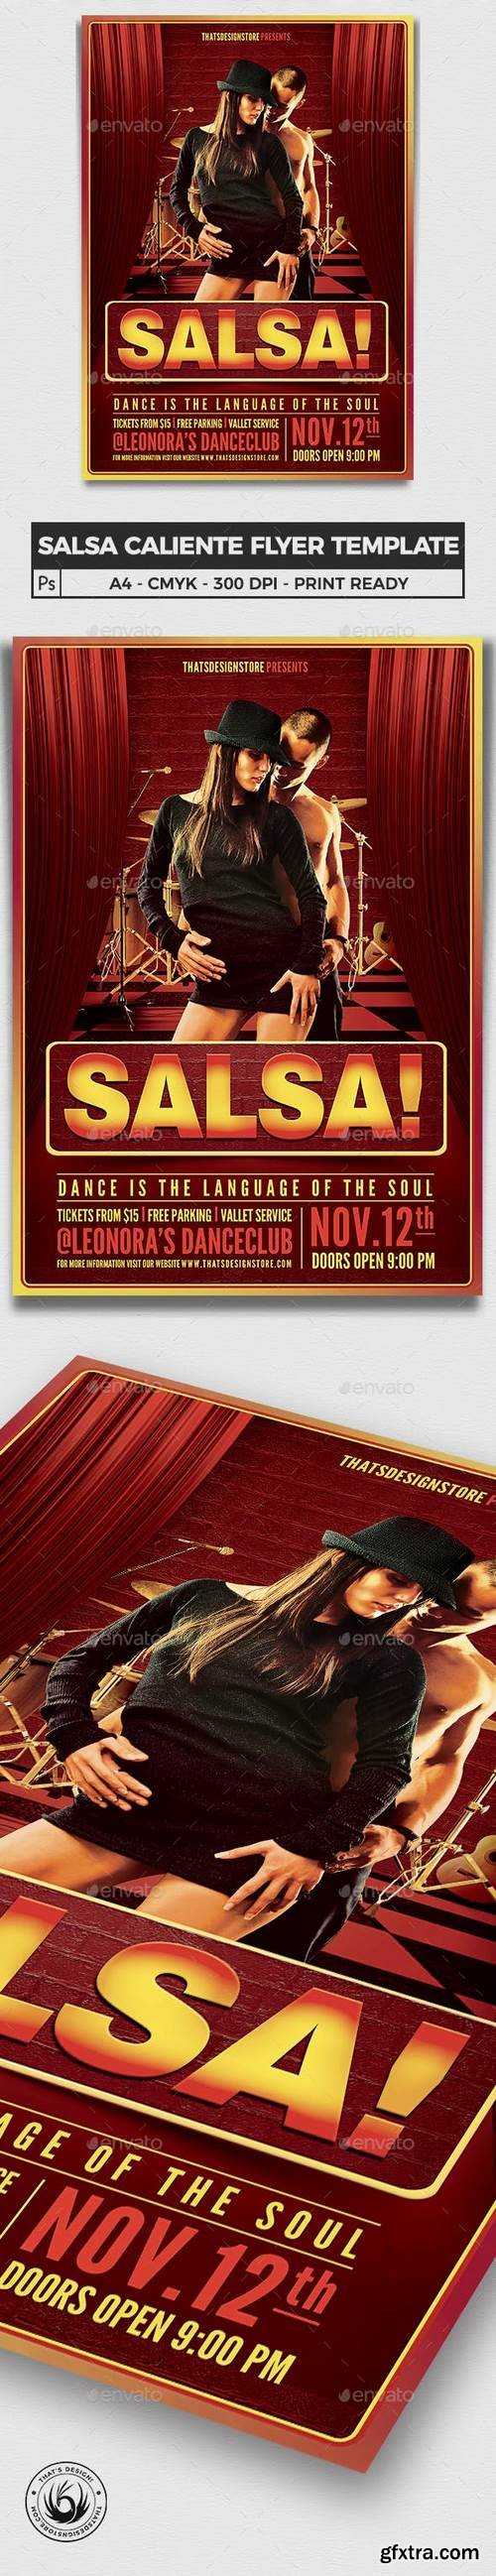 Graphicriver - Salsa Caliente Flyer Template 6251593 - Updated !